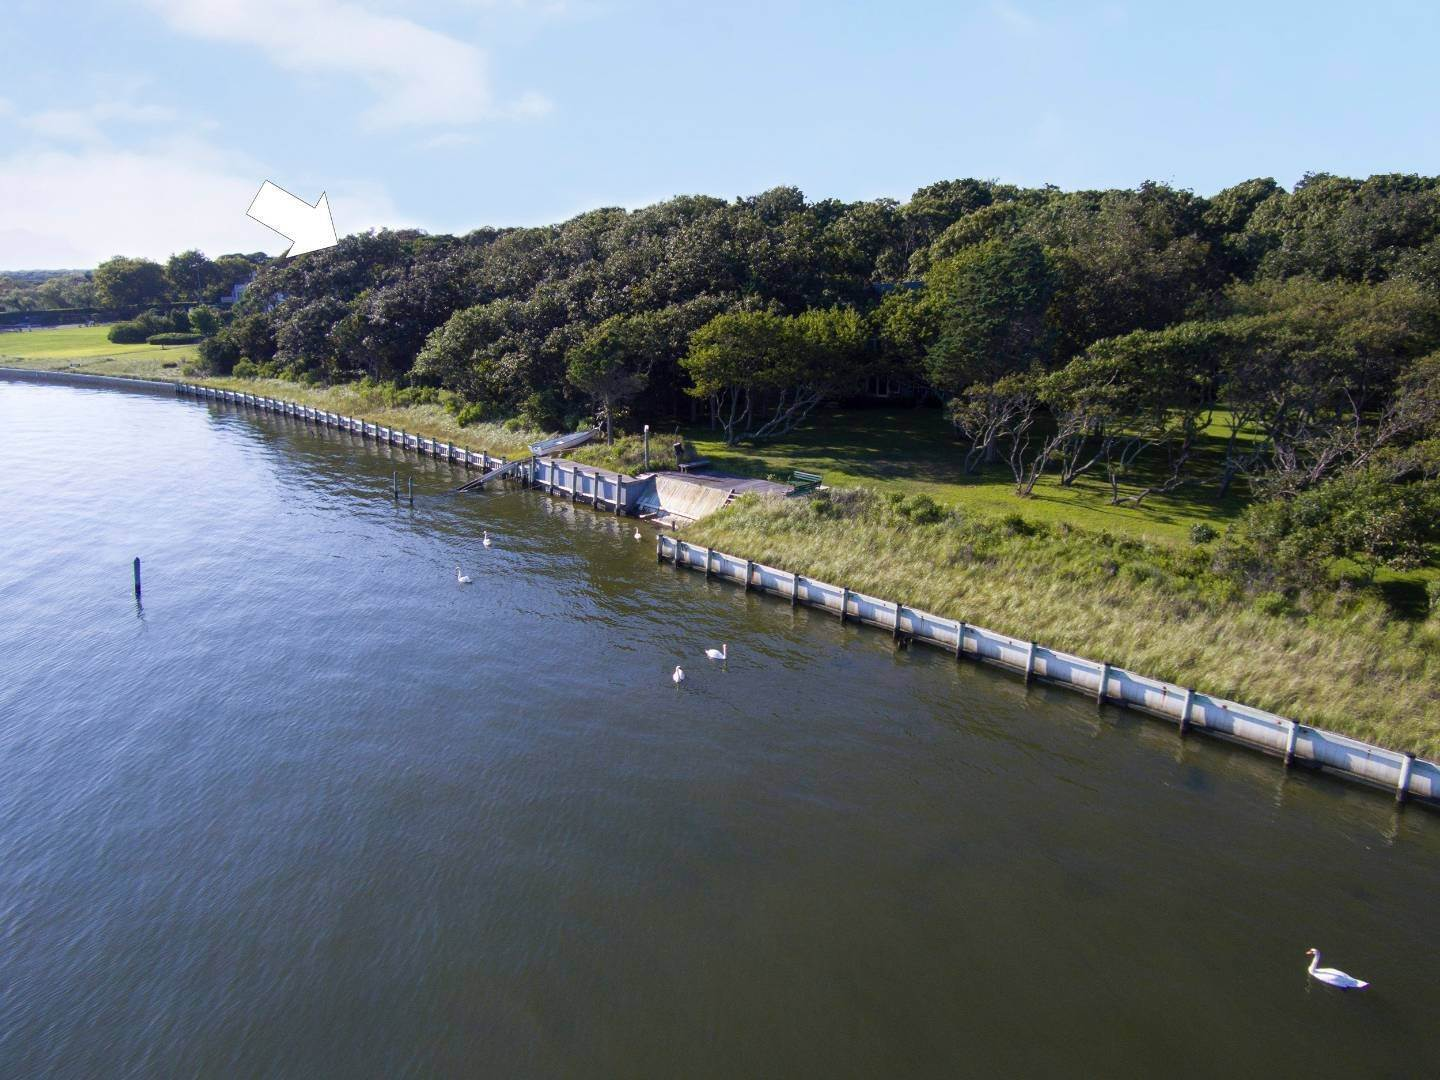 Land for Sale at Build Your Own Open Bayfront Tuthill Point East Moriches Tuthill Point Road (Adjacent To #77), East Moriches, NY 11940